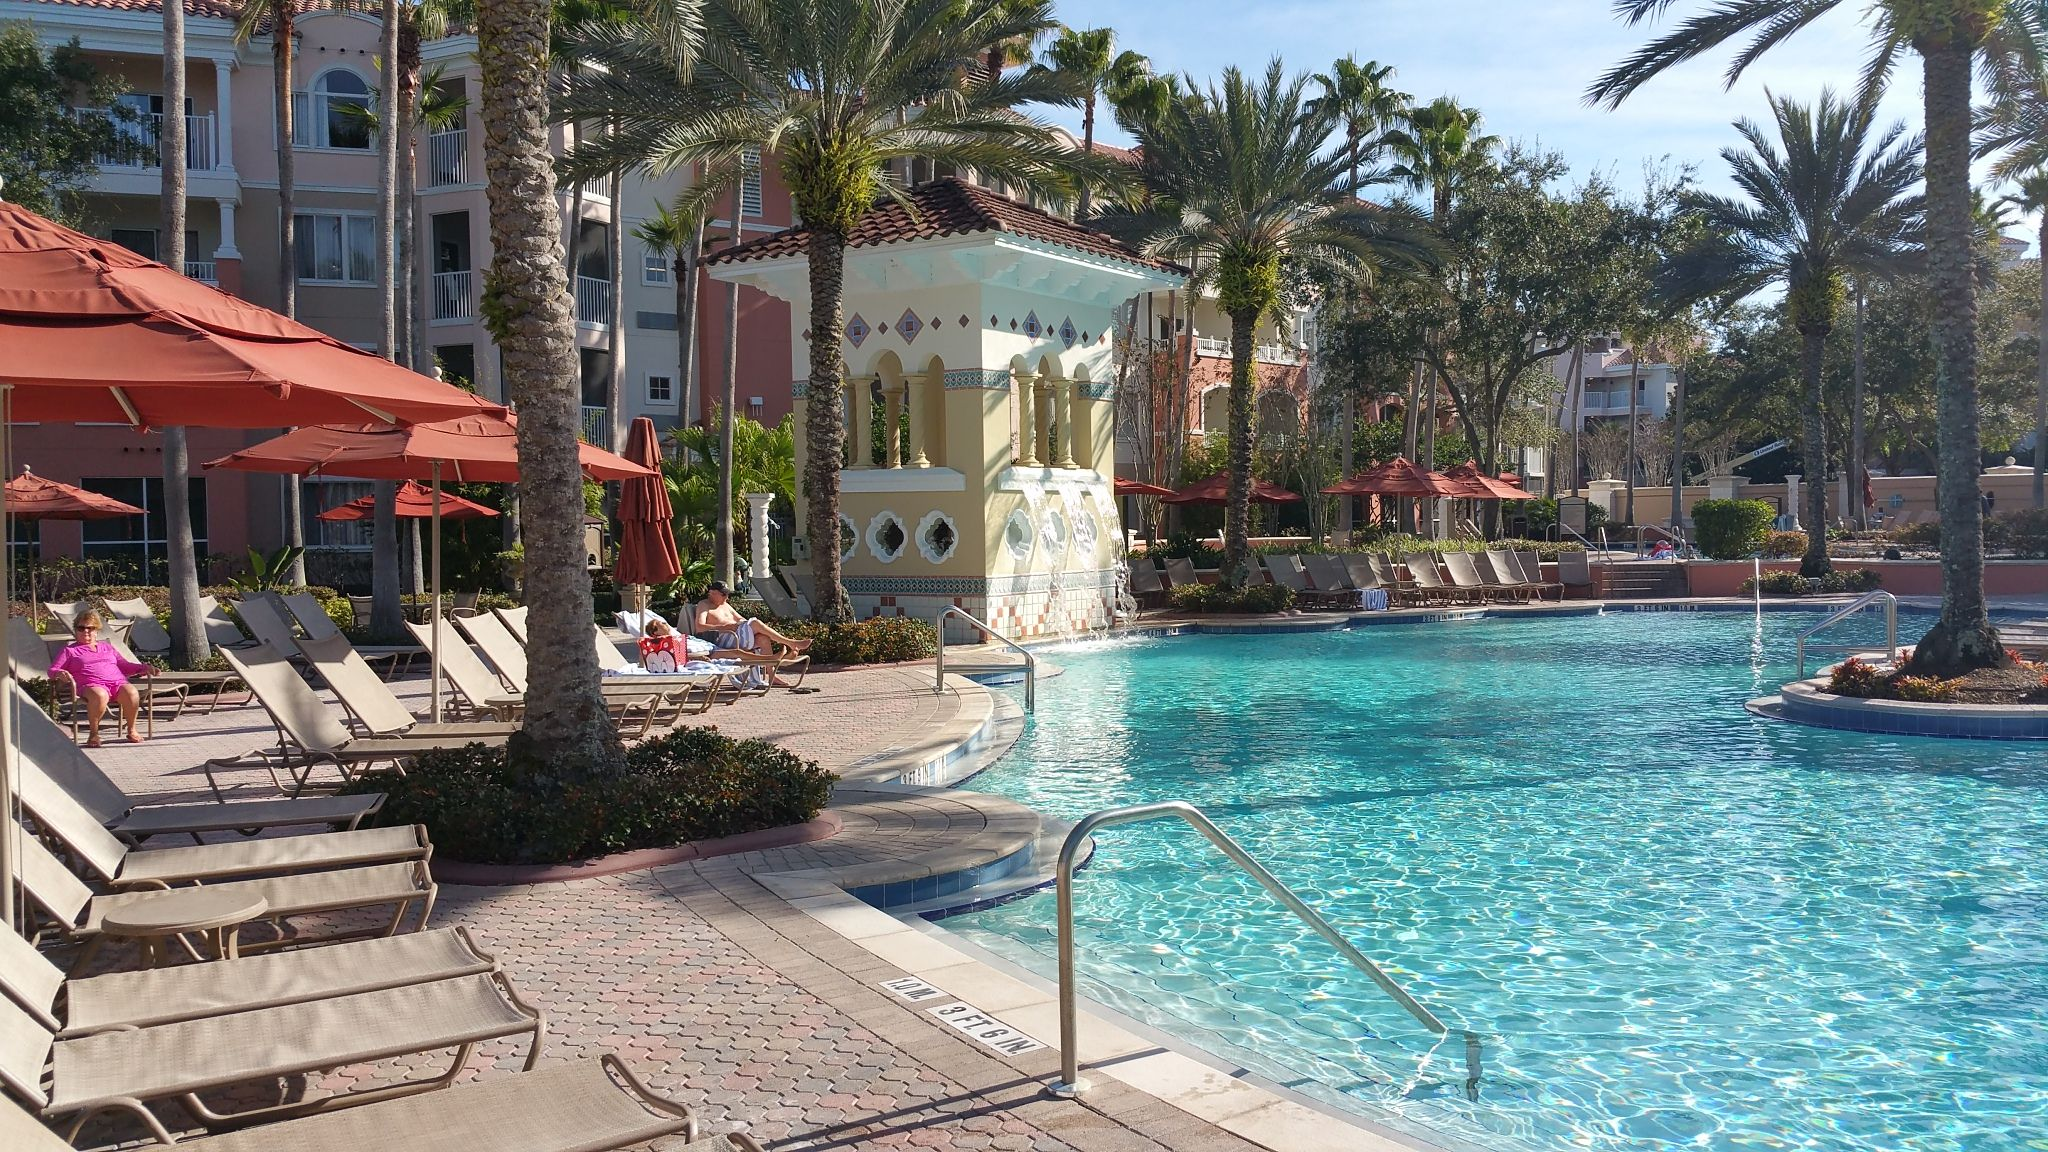 The main pool at Marriotts Grande Vista Resort in Orlando